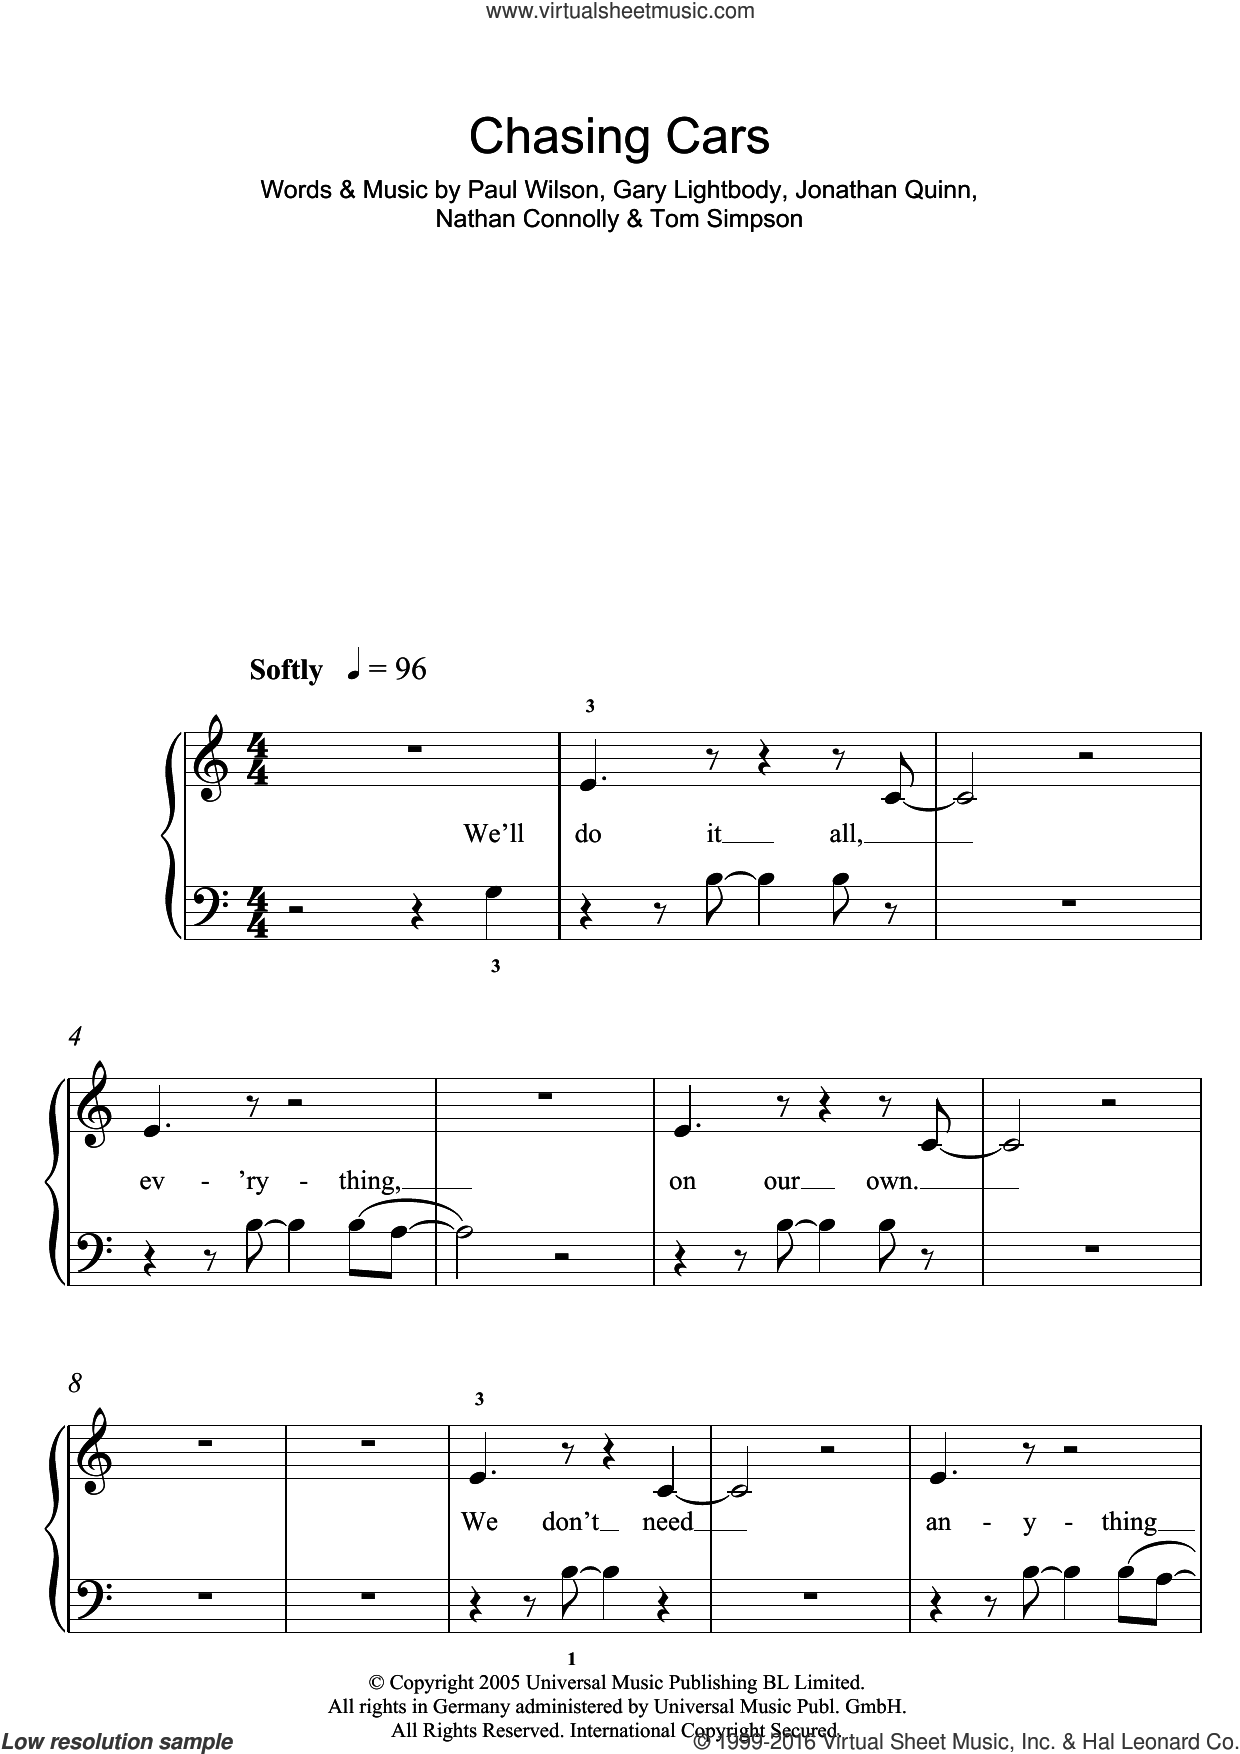 Chasing Cars sheet music for piano solo (5-fingers) by Tom Simpson, Snow Patrol, Gary Lightbody, Nathan Connolly and Paul Wilson. Score Image Preview.